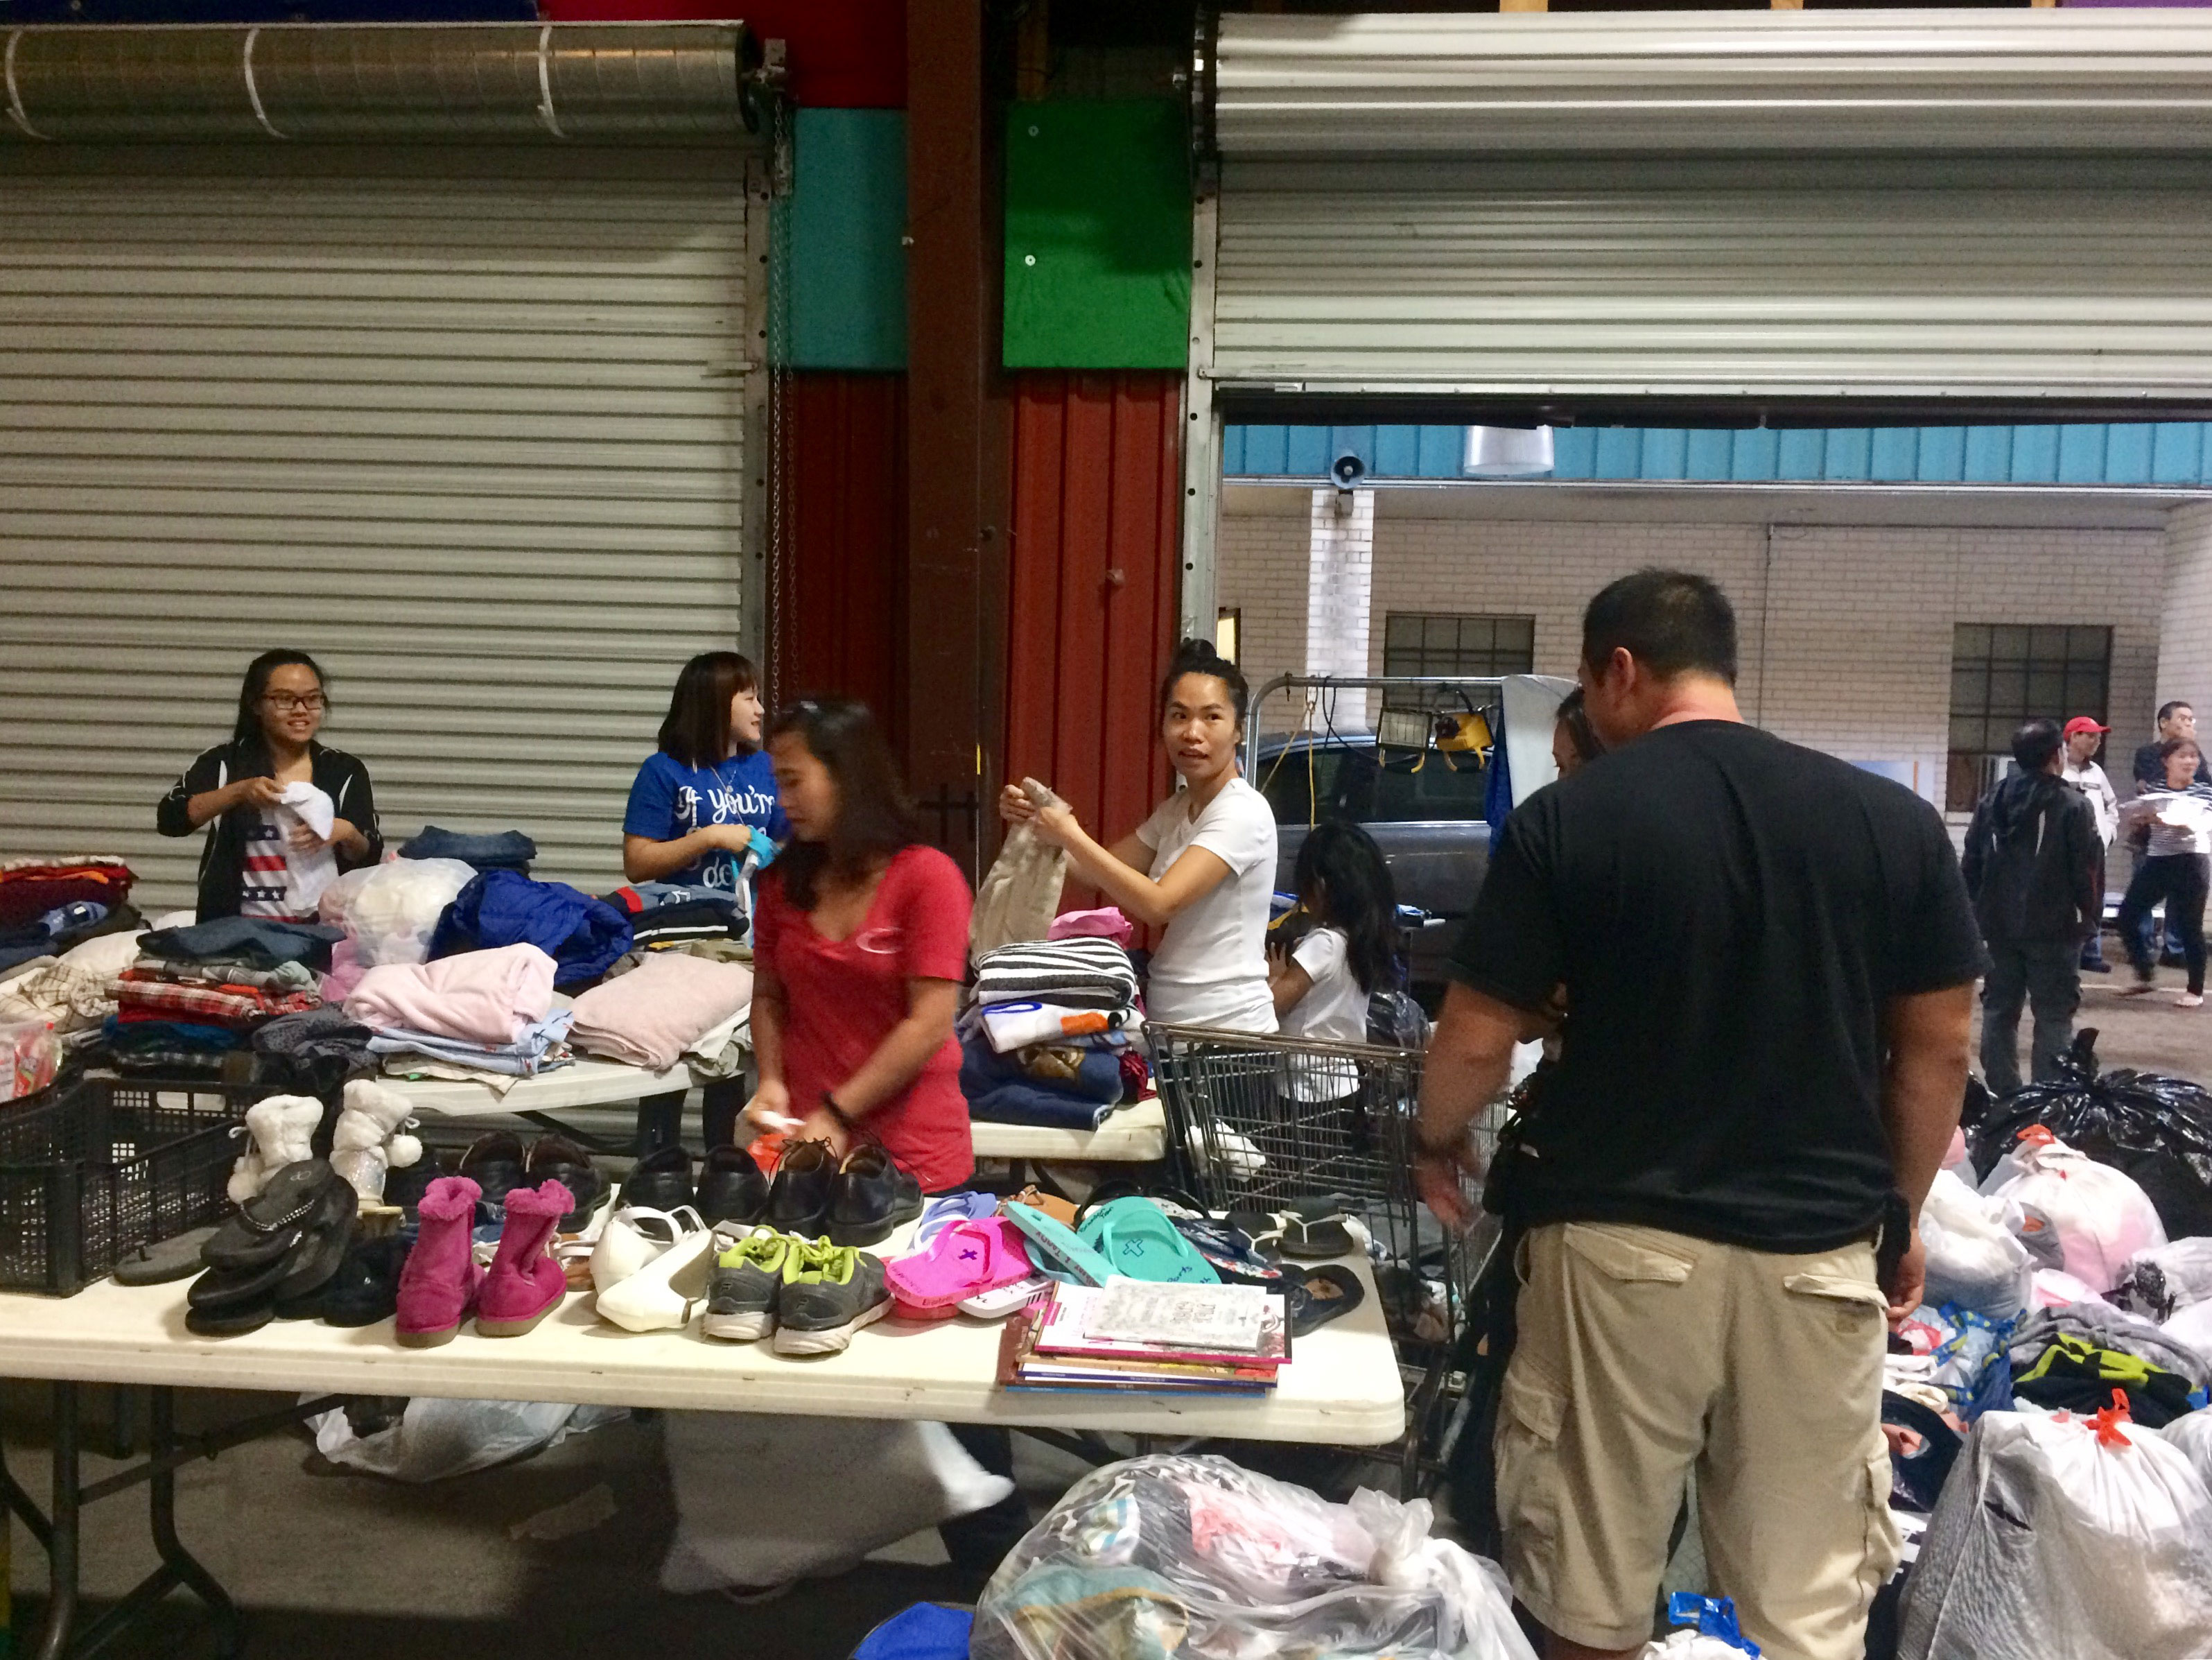 <div class='meta'><div class='origin-logo' data-origin='none'></div><span class='caption-text' data-credit='Uyen Do'>Volunteers sort through donations in this viewer-submitted photo.</span></div>